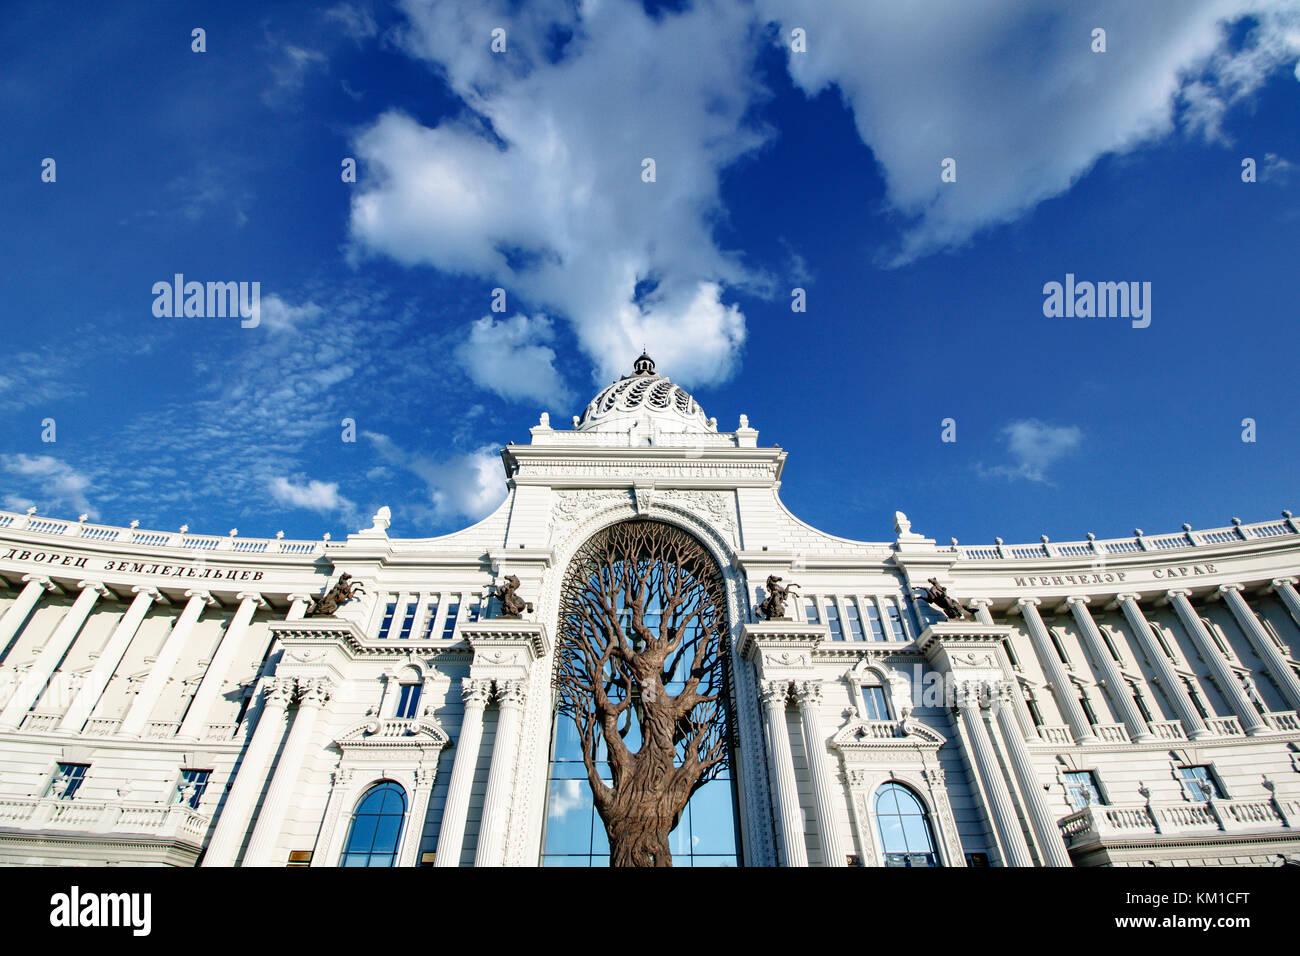 Agricultural palace of Kazan, Russia Stock Photo